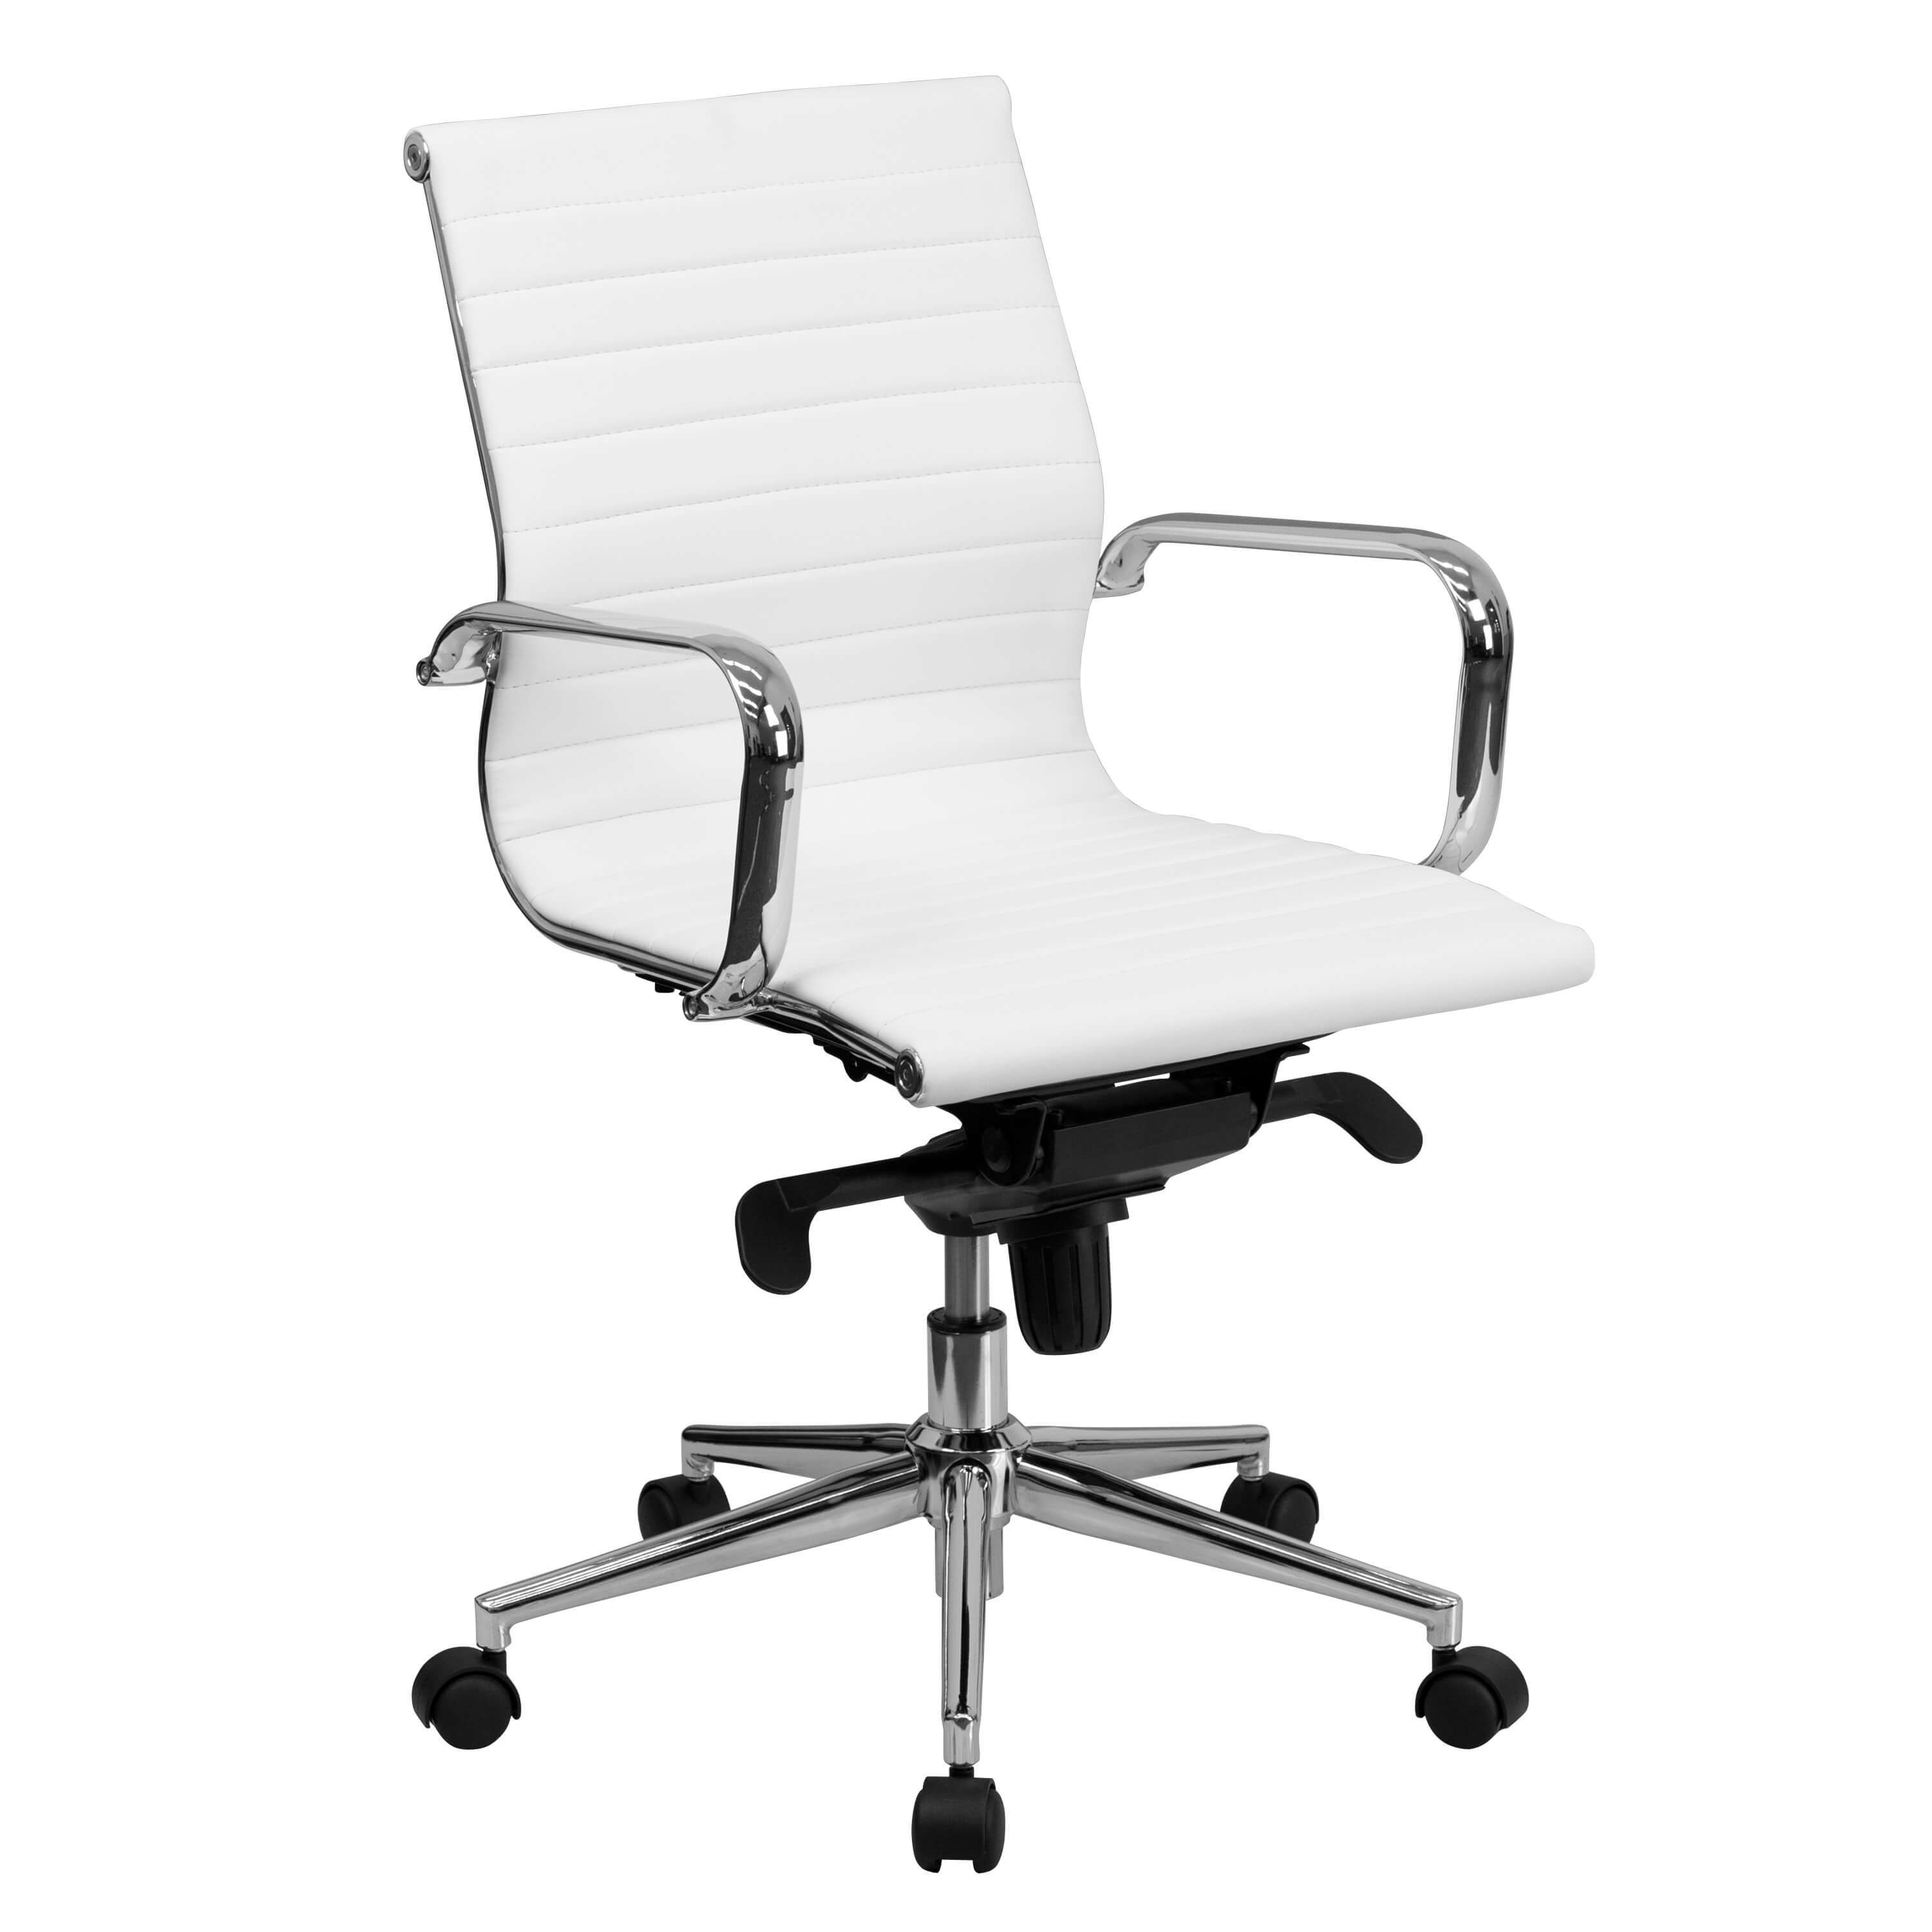 Corona Slim and Tall Conference Room Chairs